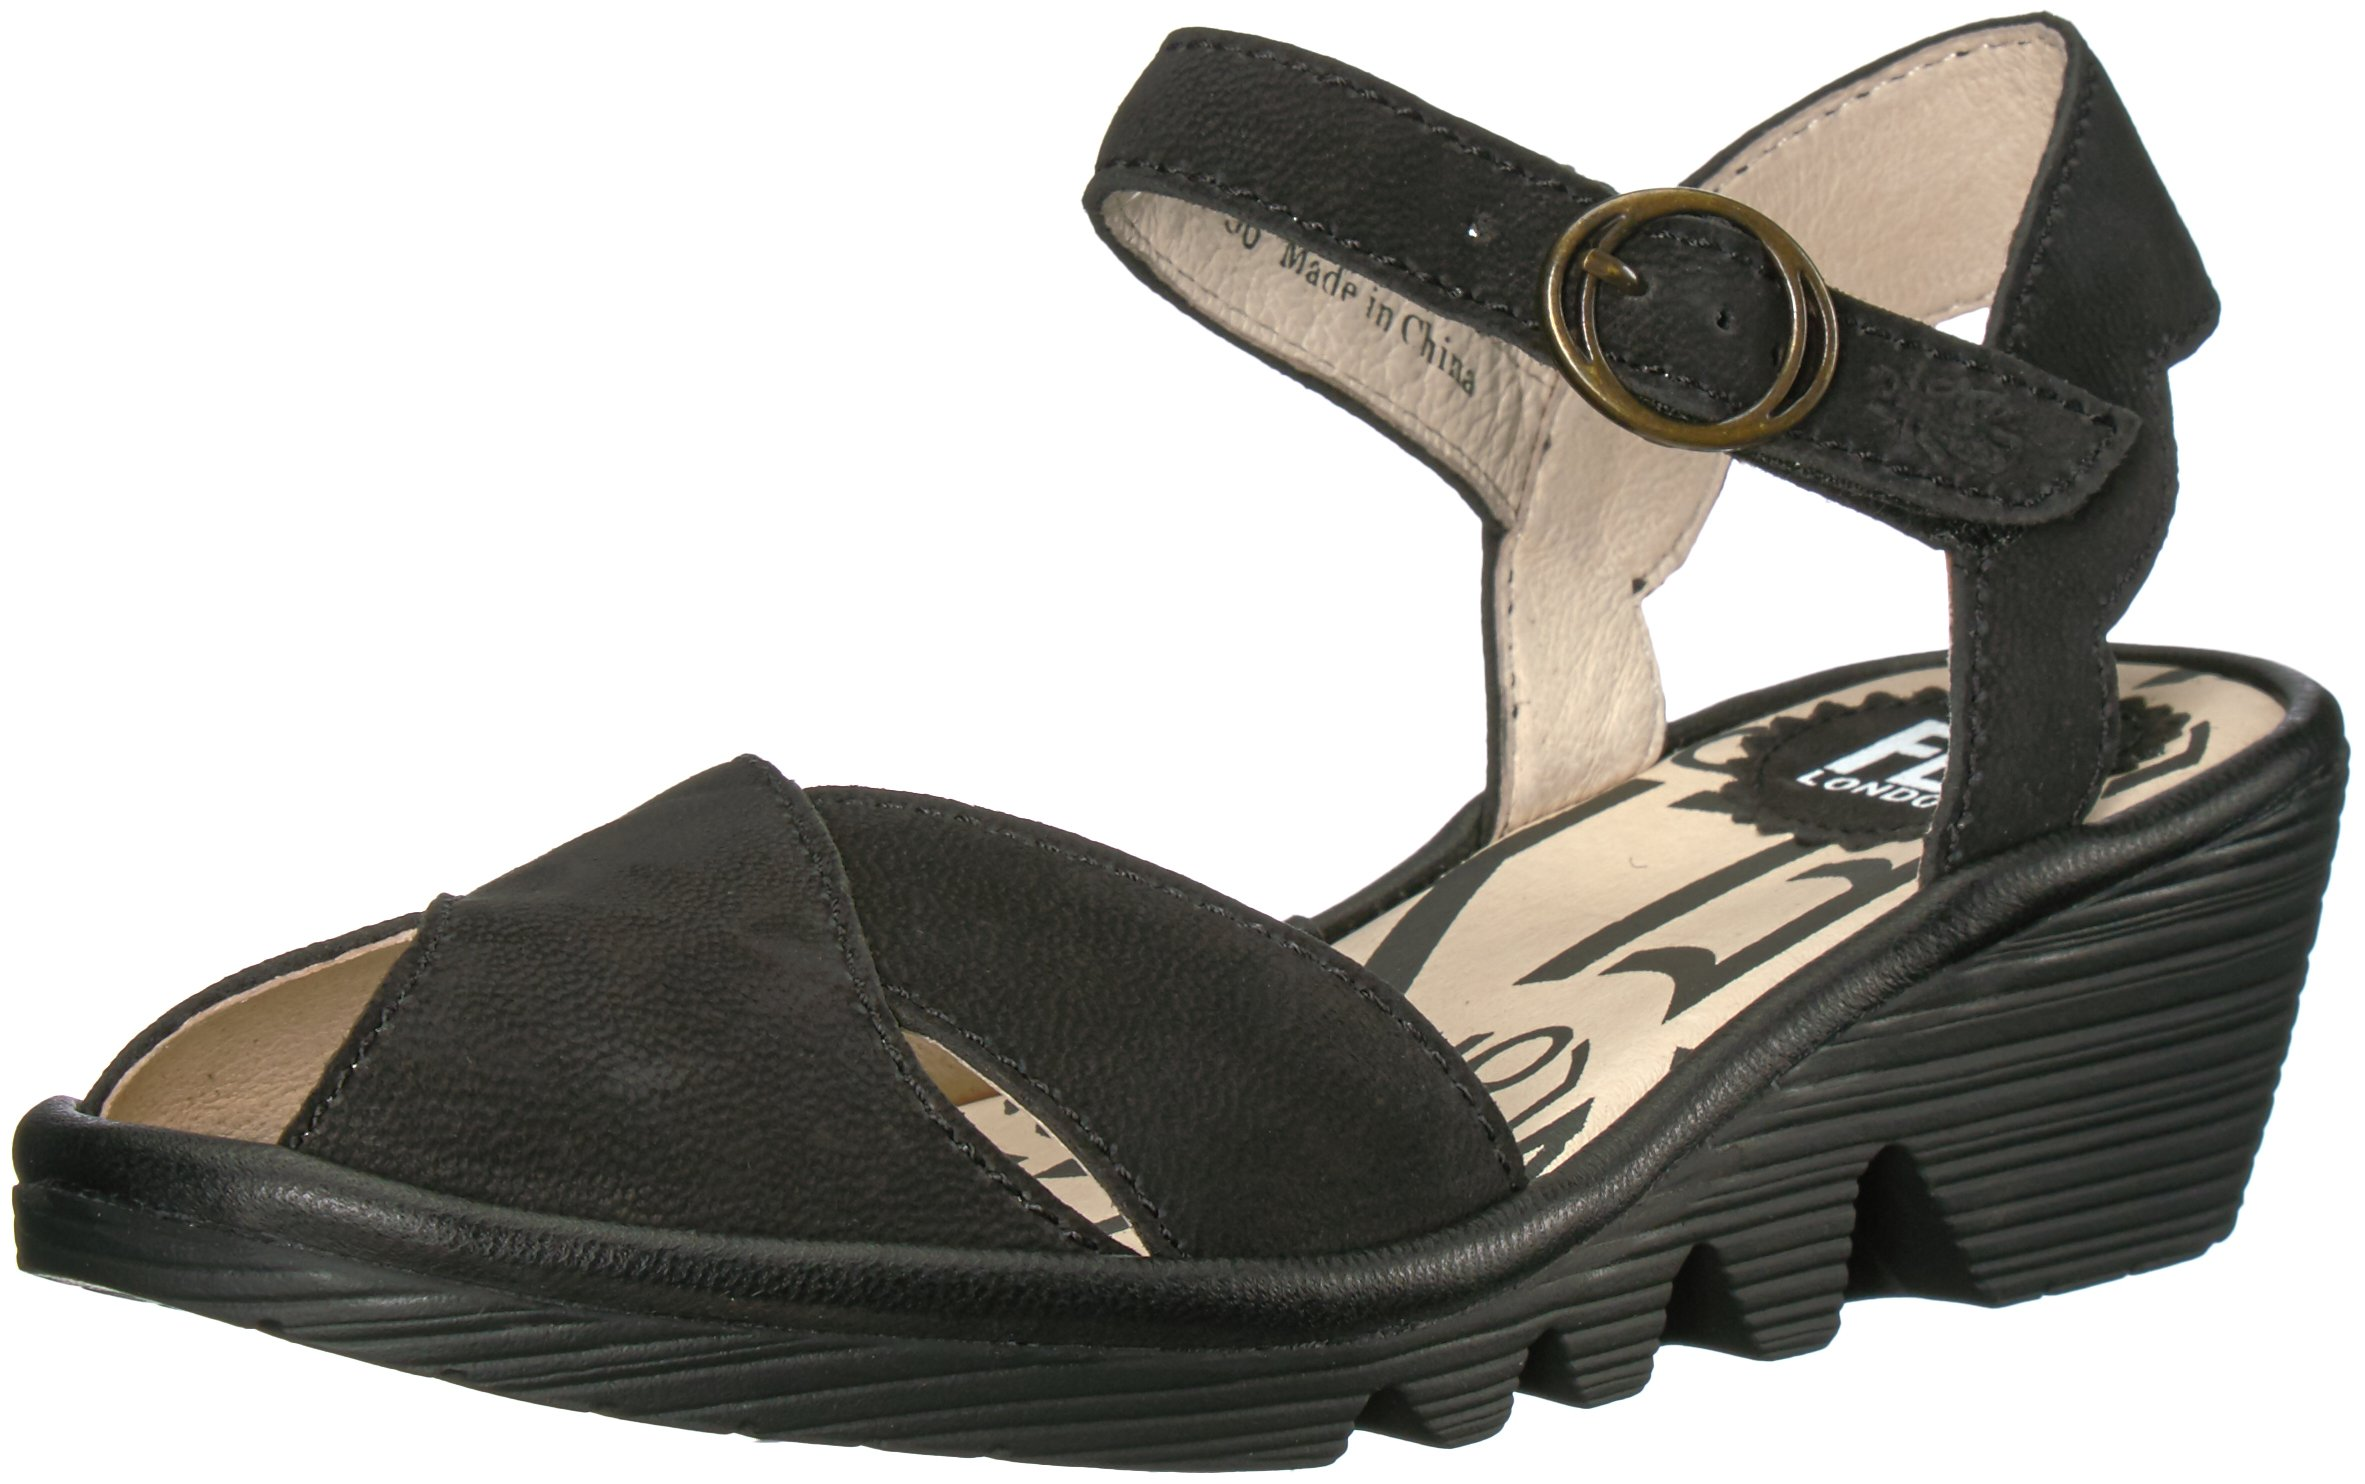 FLY London Women's Pero706fly Wedge Sandal, Black Cupido/Mousse, 41 EU/10-10.5 M US